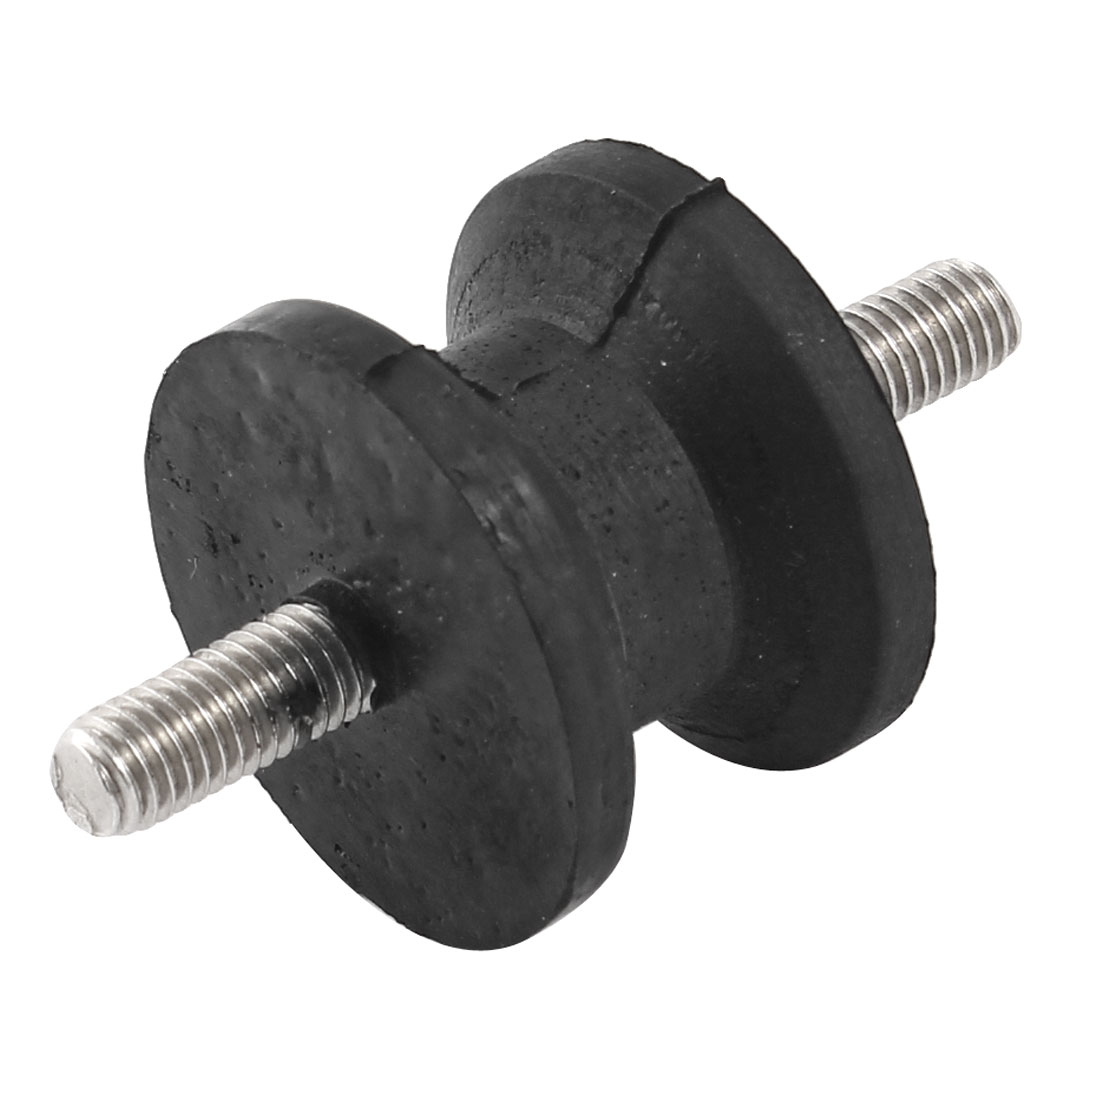 Double-Ends-8mm-Dia-Male-Threaded-40mmx27mm-Rubber-Vibration-Isolator-Mount